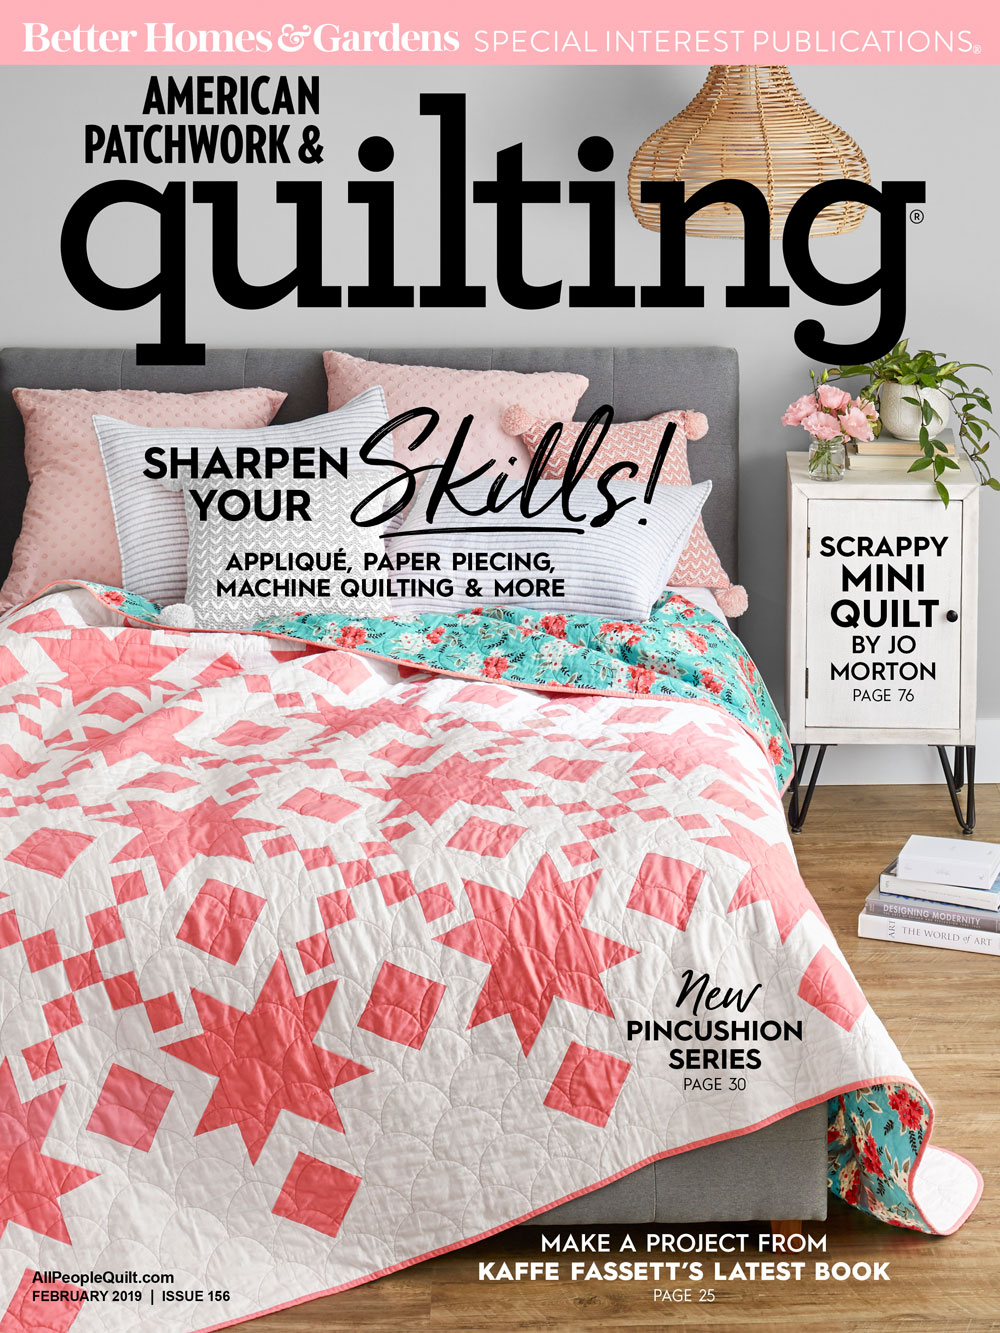 American Patchwork & Quilting February 2019